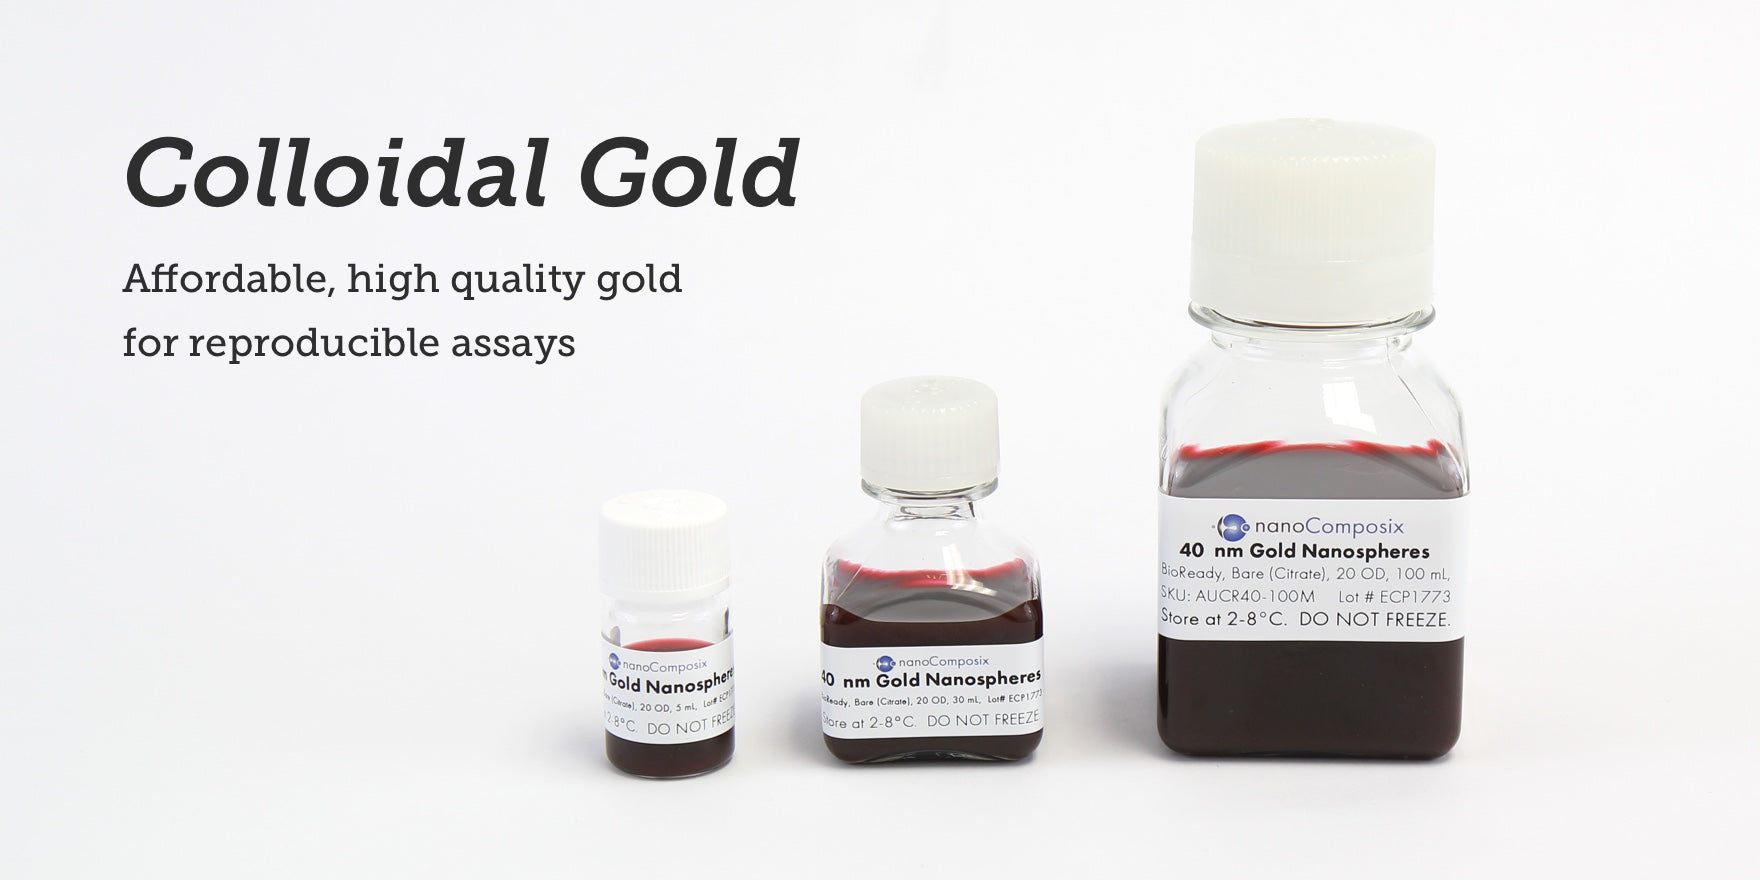 Colloidal gold – affordable, high quality gold for reproducible assays